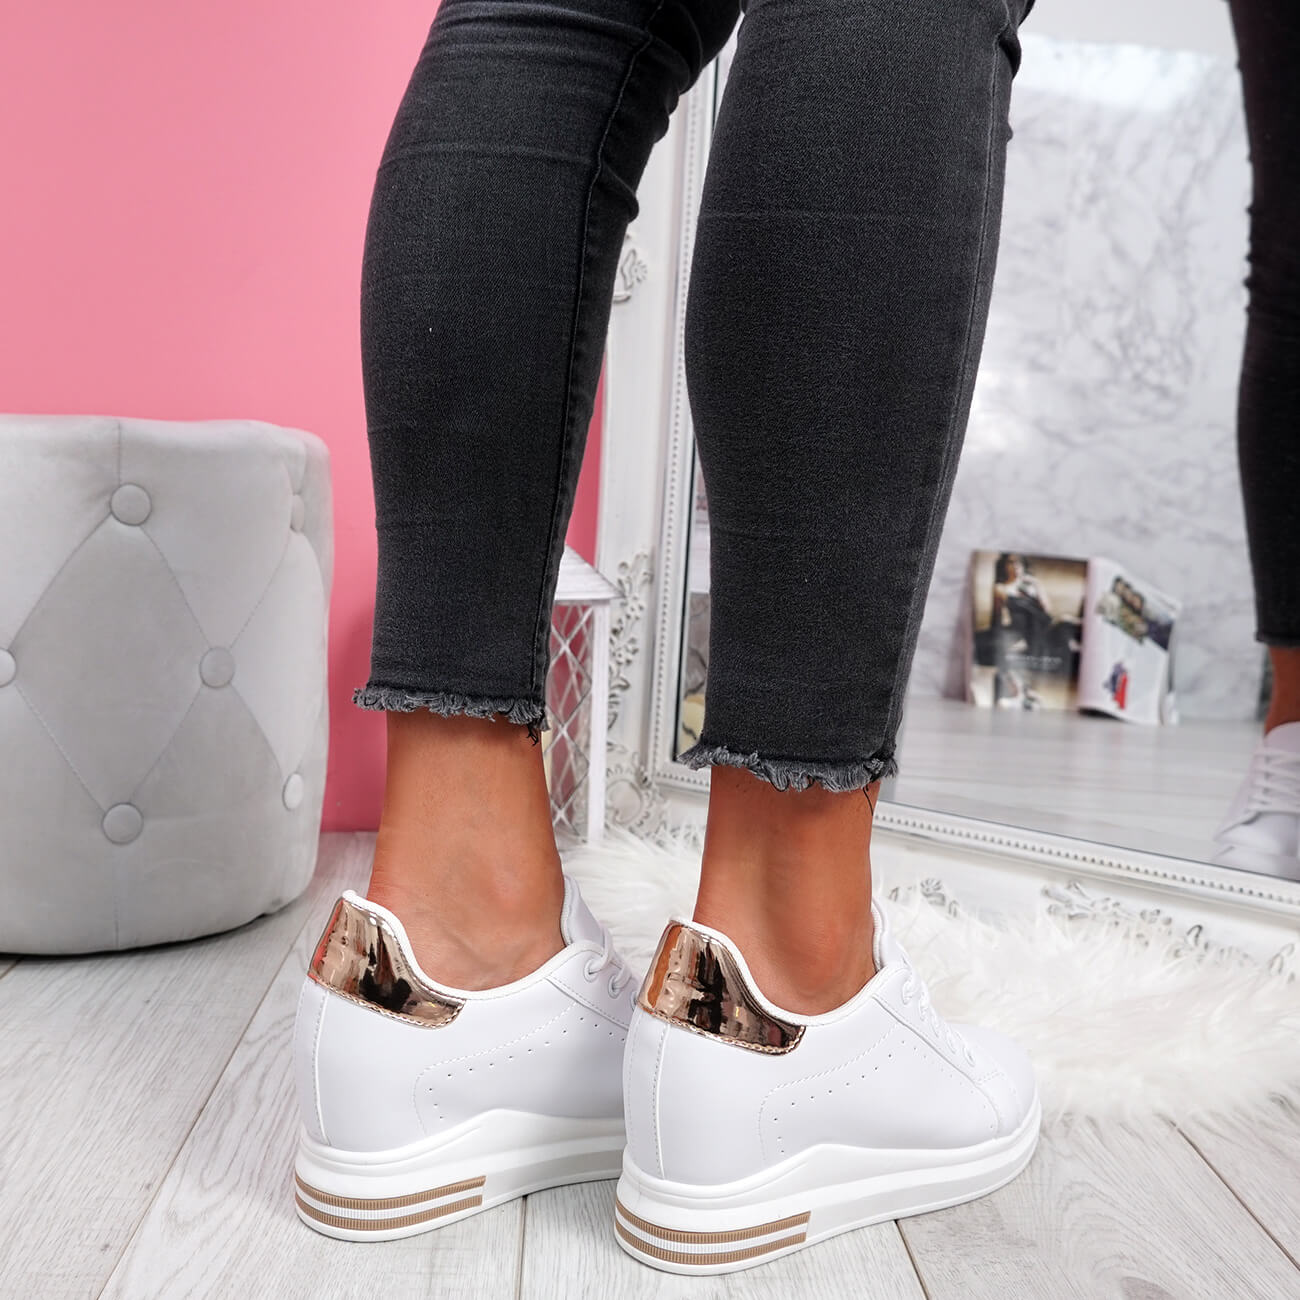 WOMENS-LADIES-LACE-UP-WEDGE-TRAINERS-HEEL-SNEAKERS-SHINY-PARTY-WOMEN-SHOES thumbnail 21